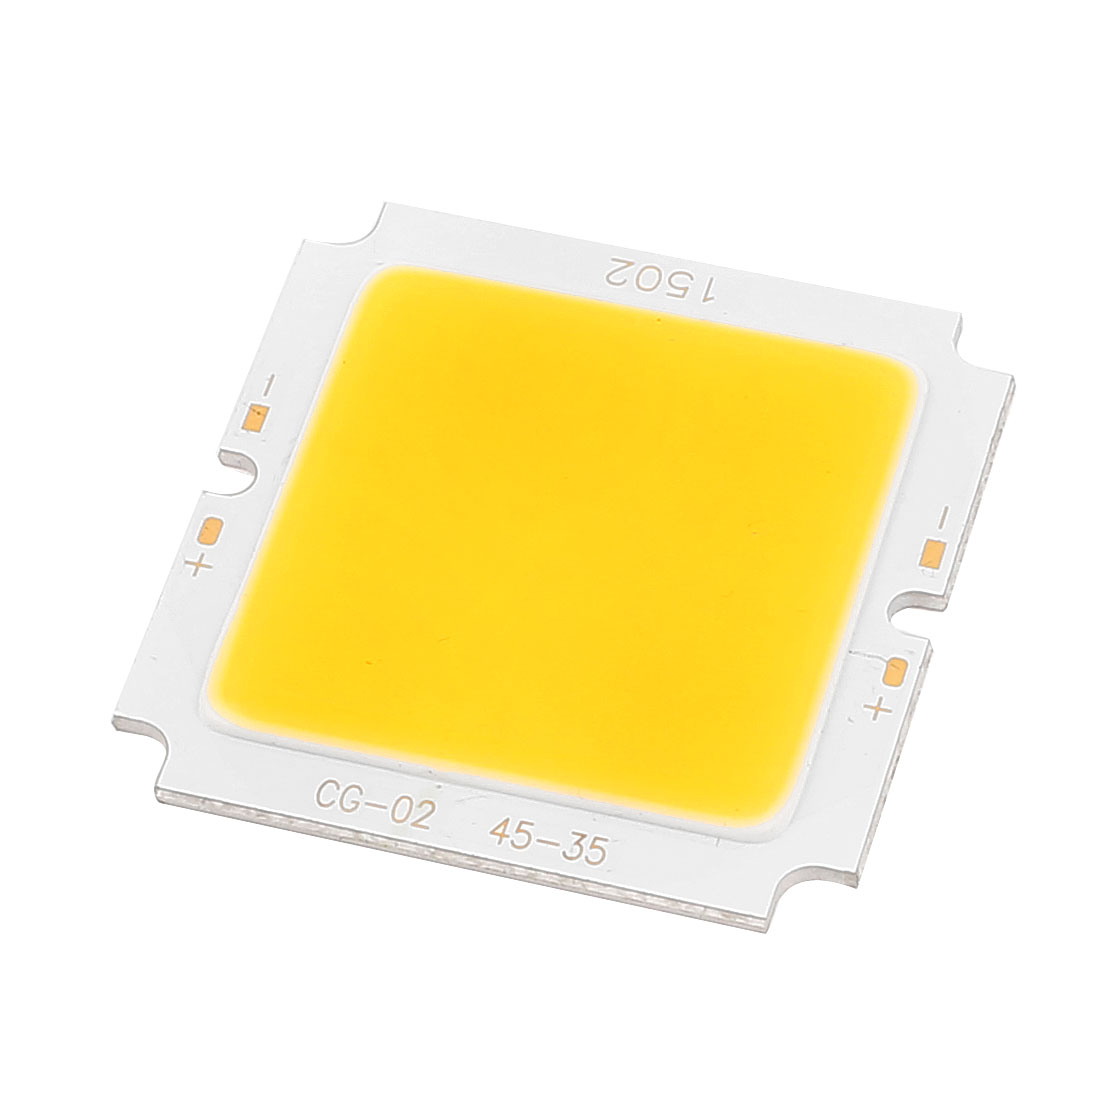 15W DC40-45V 300mA 80-90LM/W Warm White LED Light COB Lamp Beads Chip